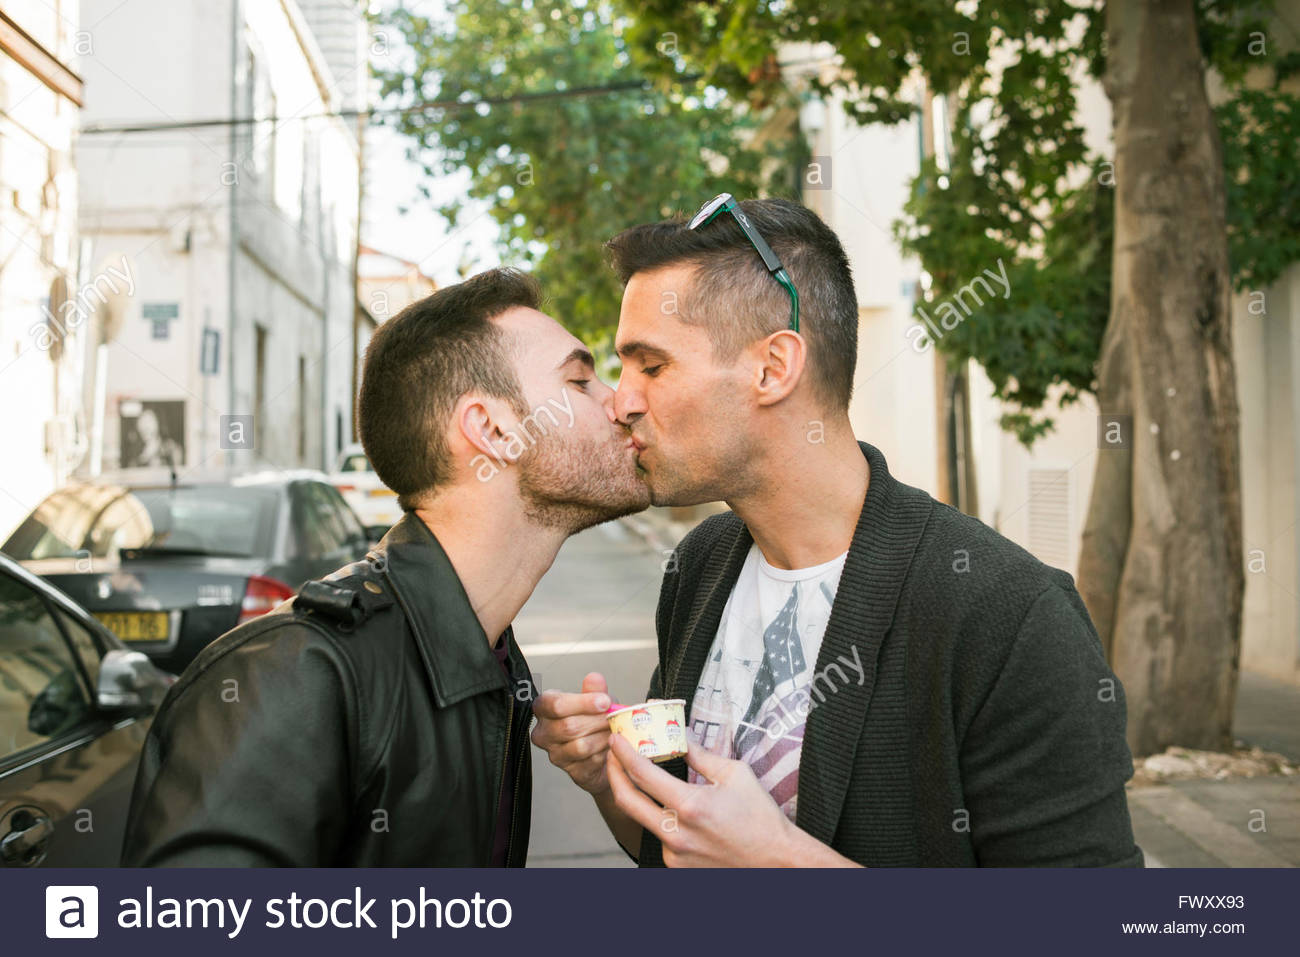 Israel, Tel Aviv, Homosexual couple kissing in street - Stock Image